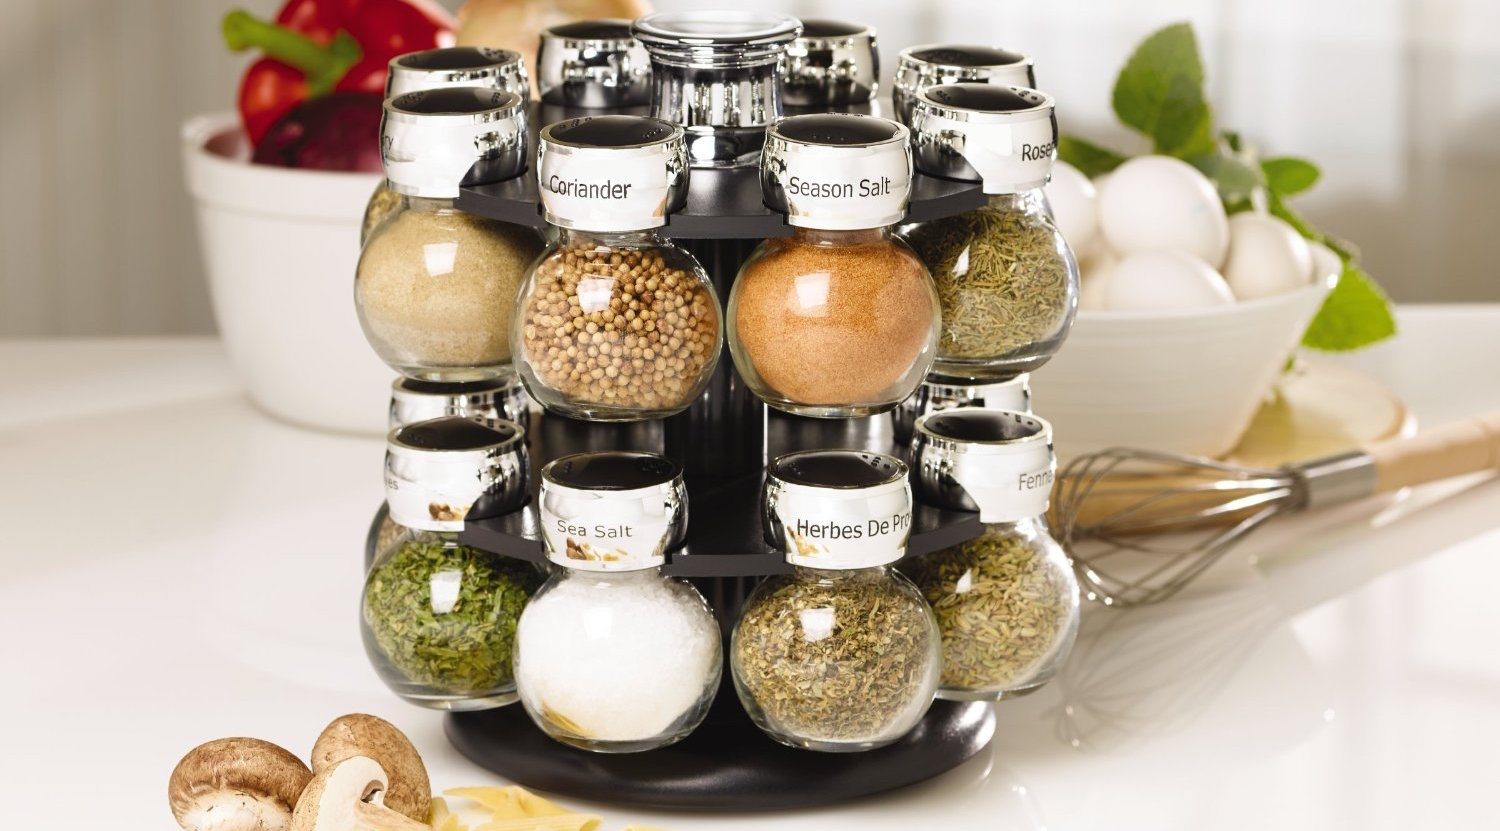 kamenstein-ellington-16-jar-revolving-spice-rack-with-spice-refills-for-5-years